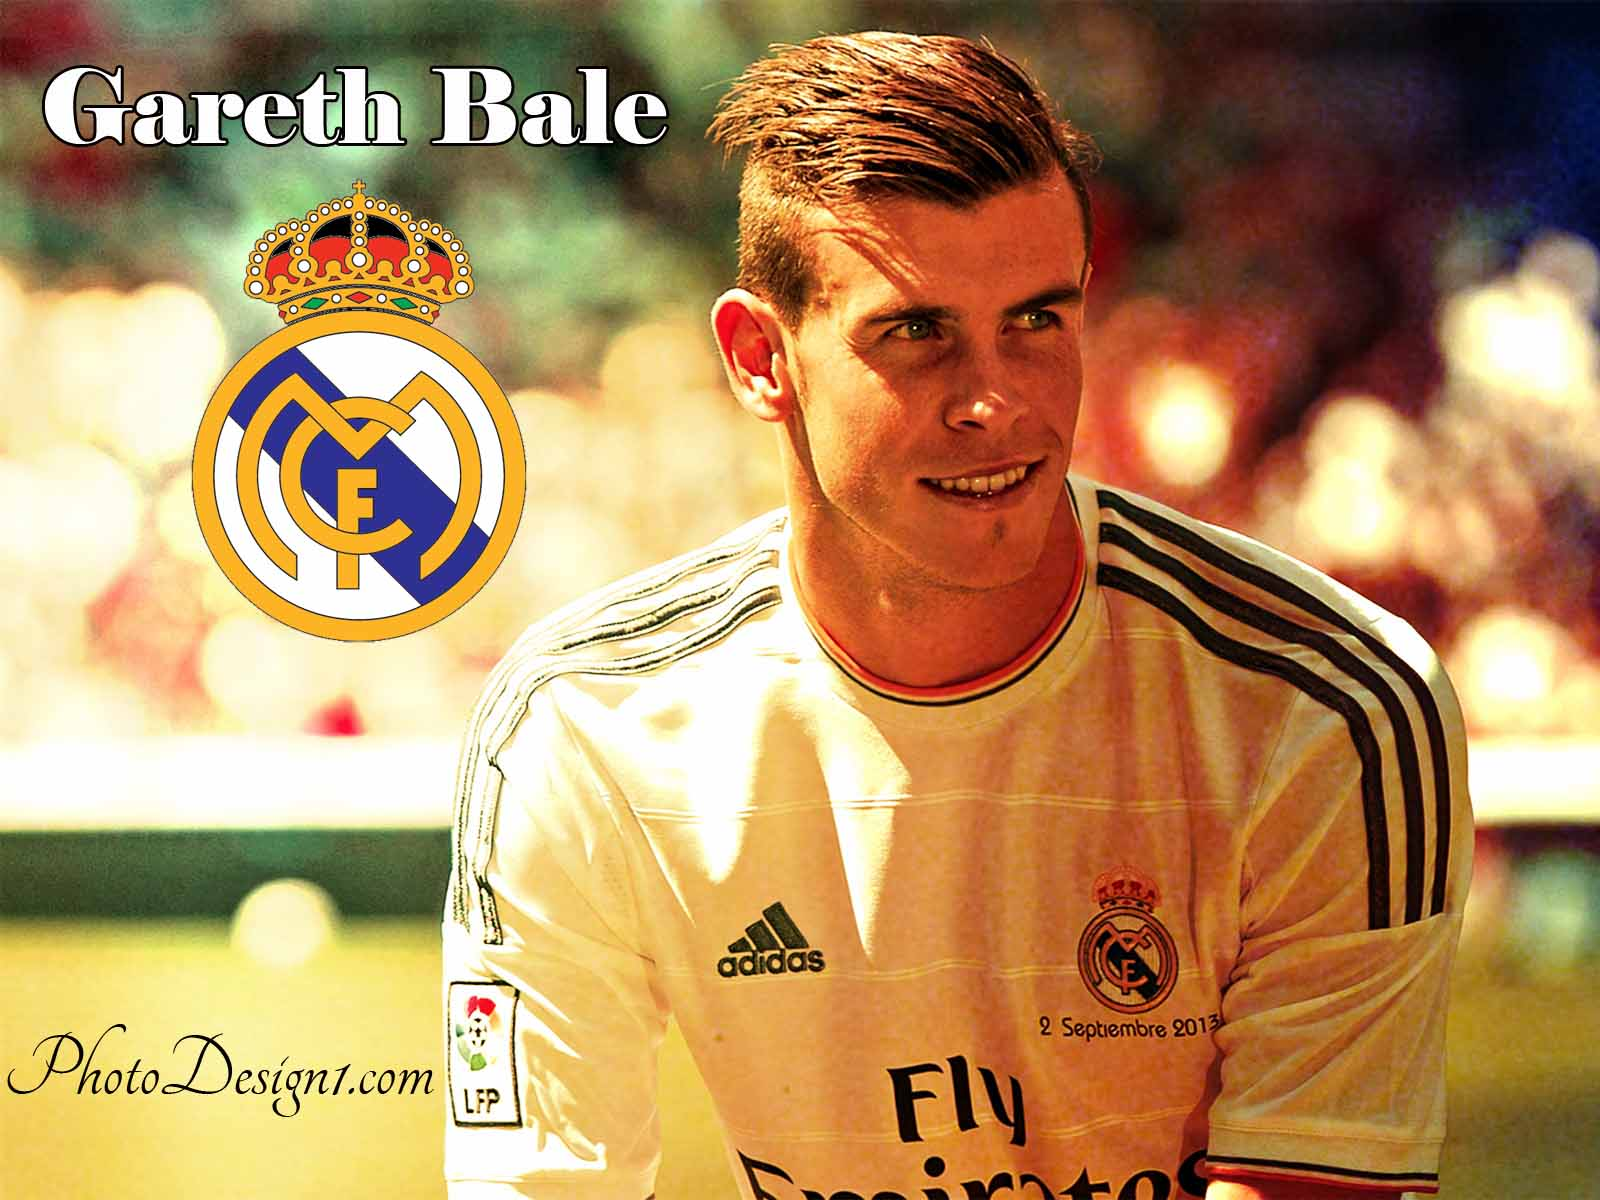 Download Gareth Bale Real Madrid HD Wallpaper Photo For #6639 ...